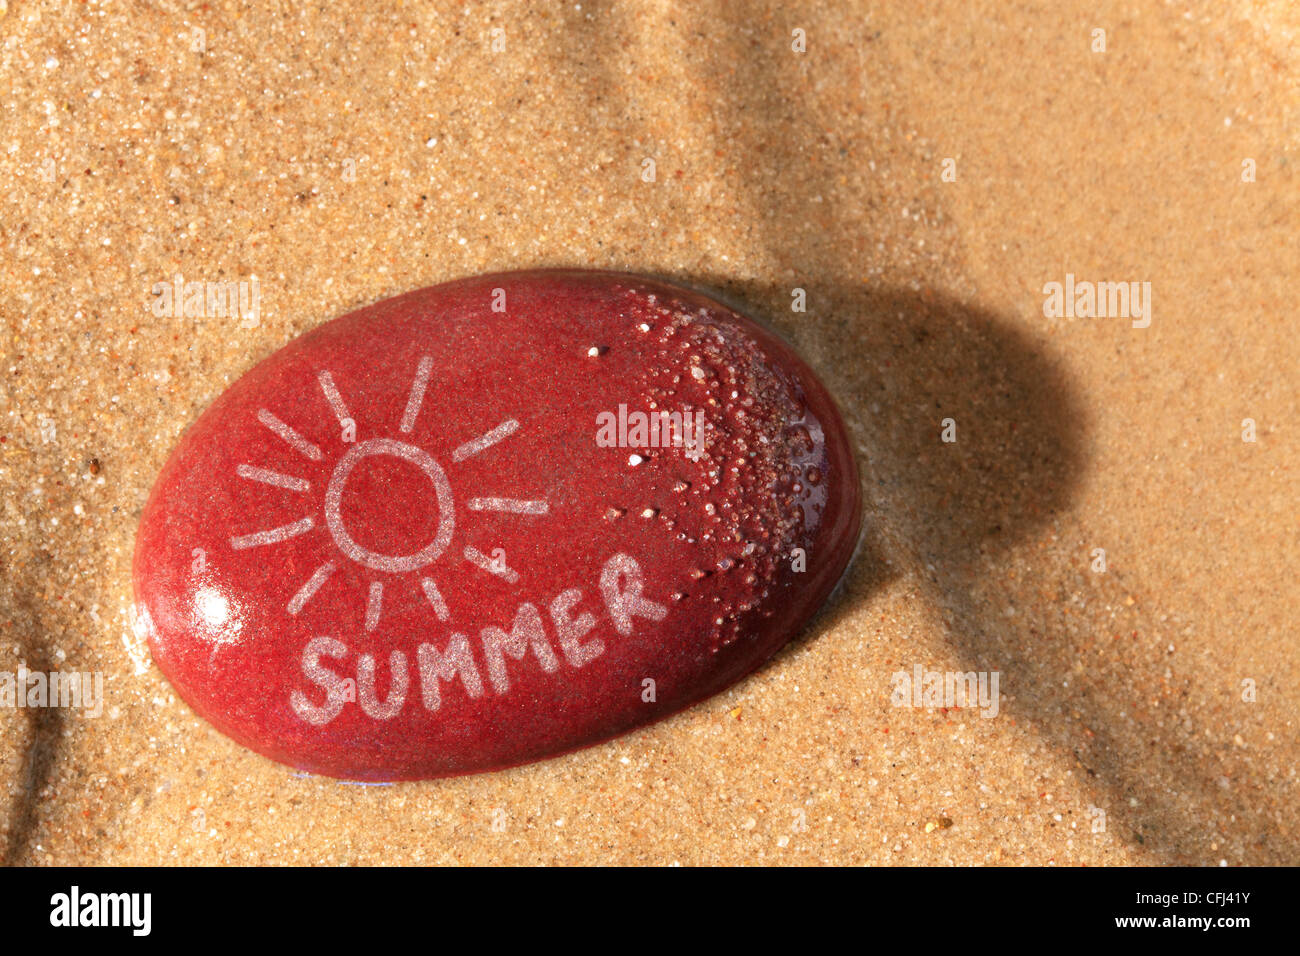 Concept photo of a wet red pebble on a sandy beach with a drawing of the sun and the word summer on it - Stock Image